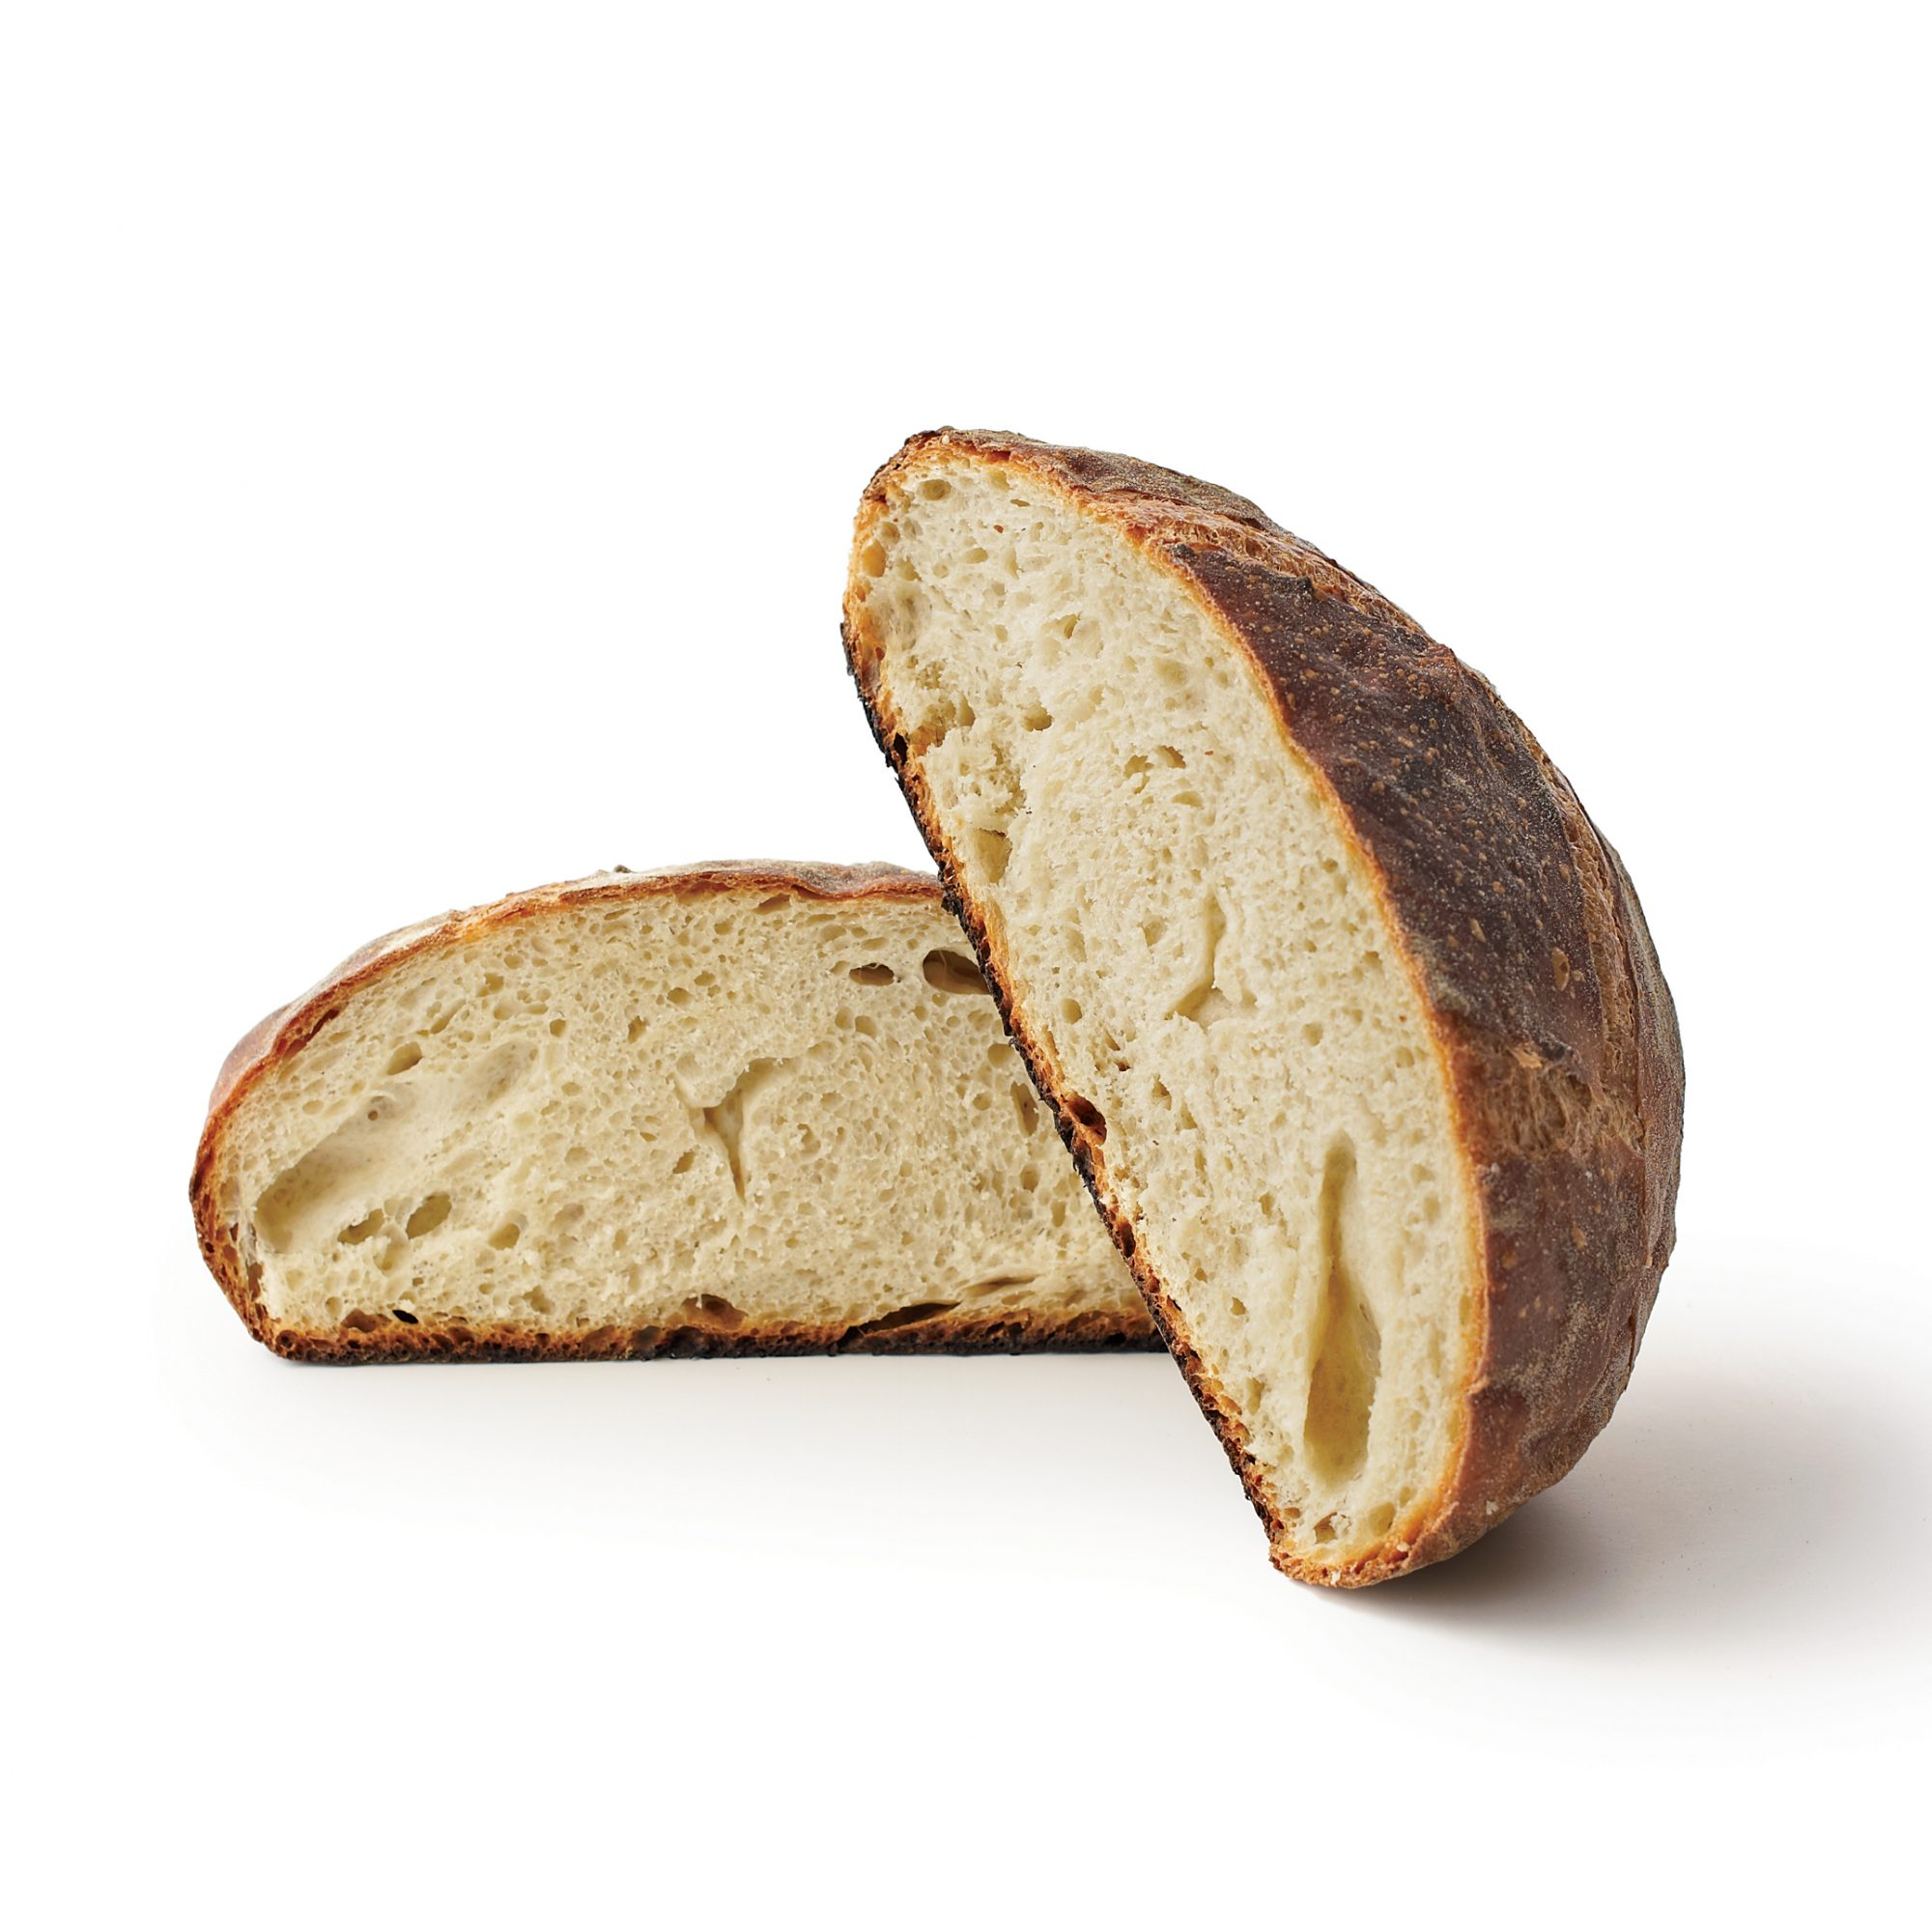 201011-r-white-bread.jpg